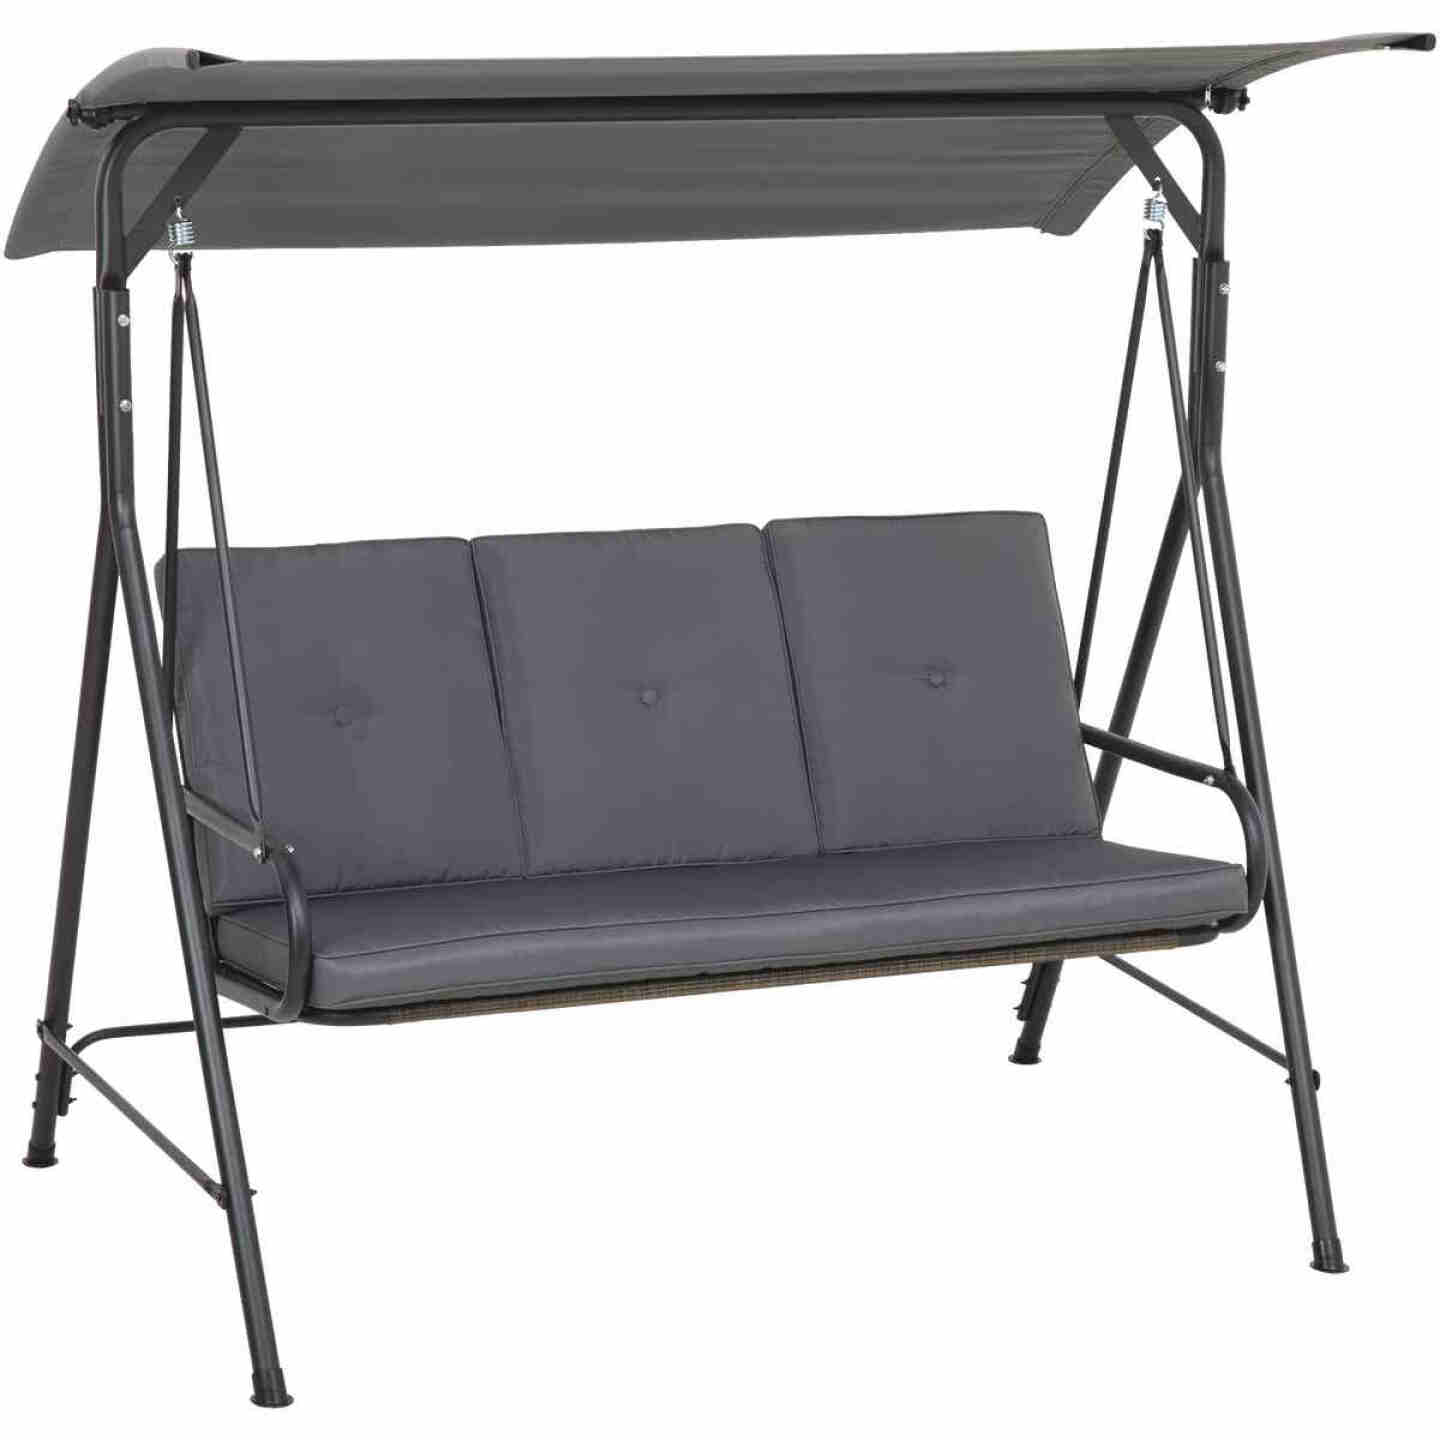 Outdoor Expressions 3-Person 71.65 In. W. x 66.93 In. H. x 49.21 In. D. Gray Patio Swing Image 1